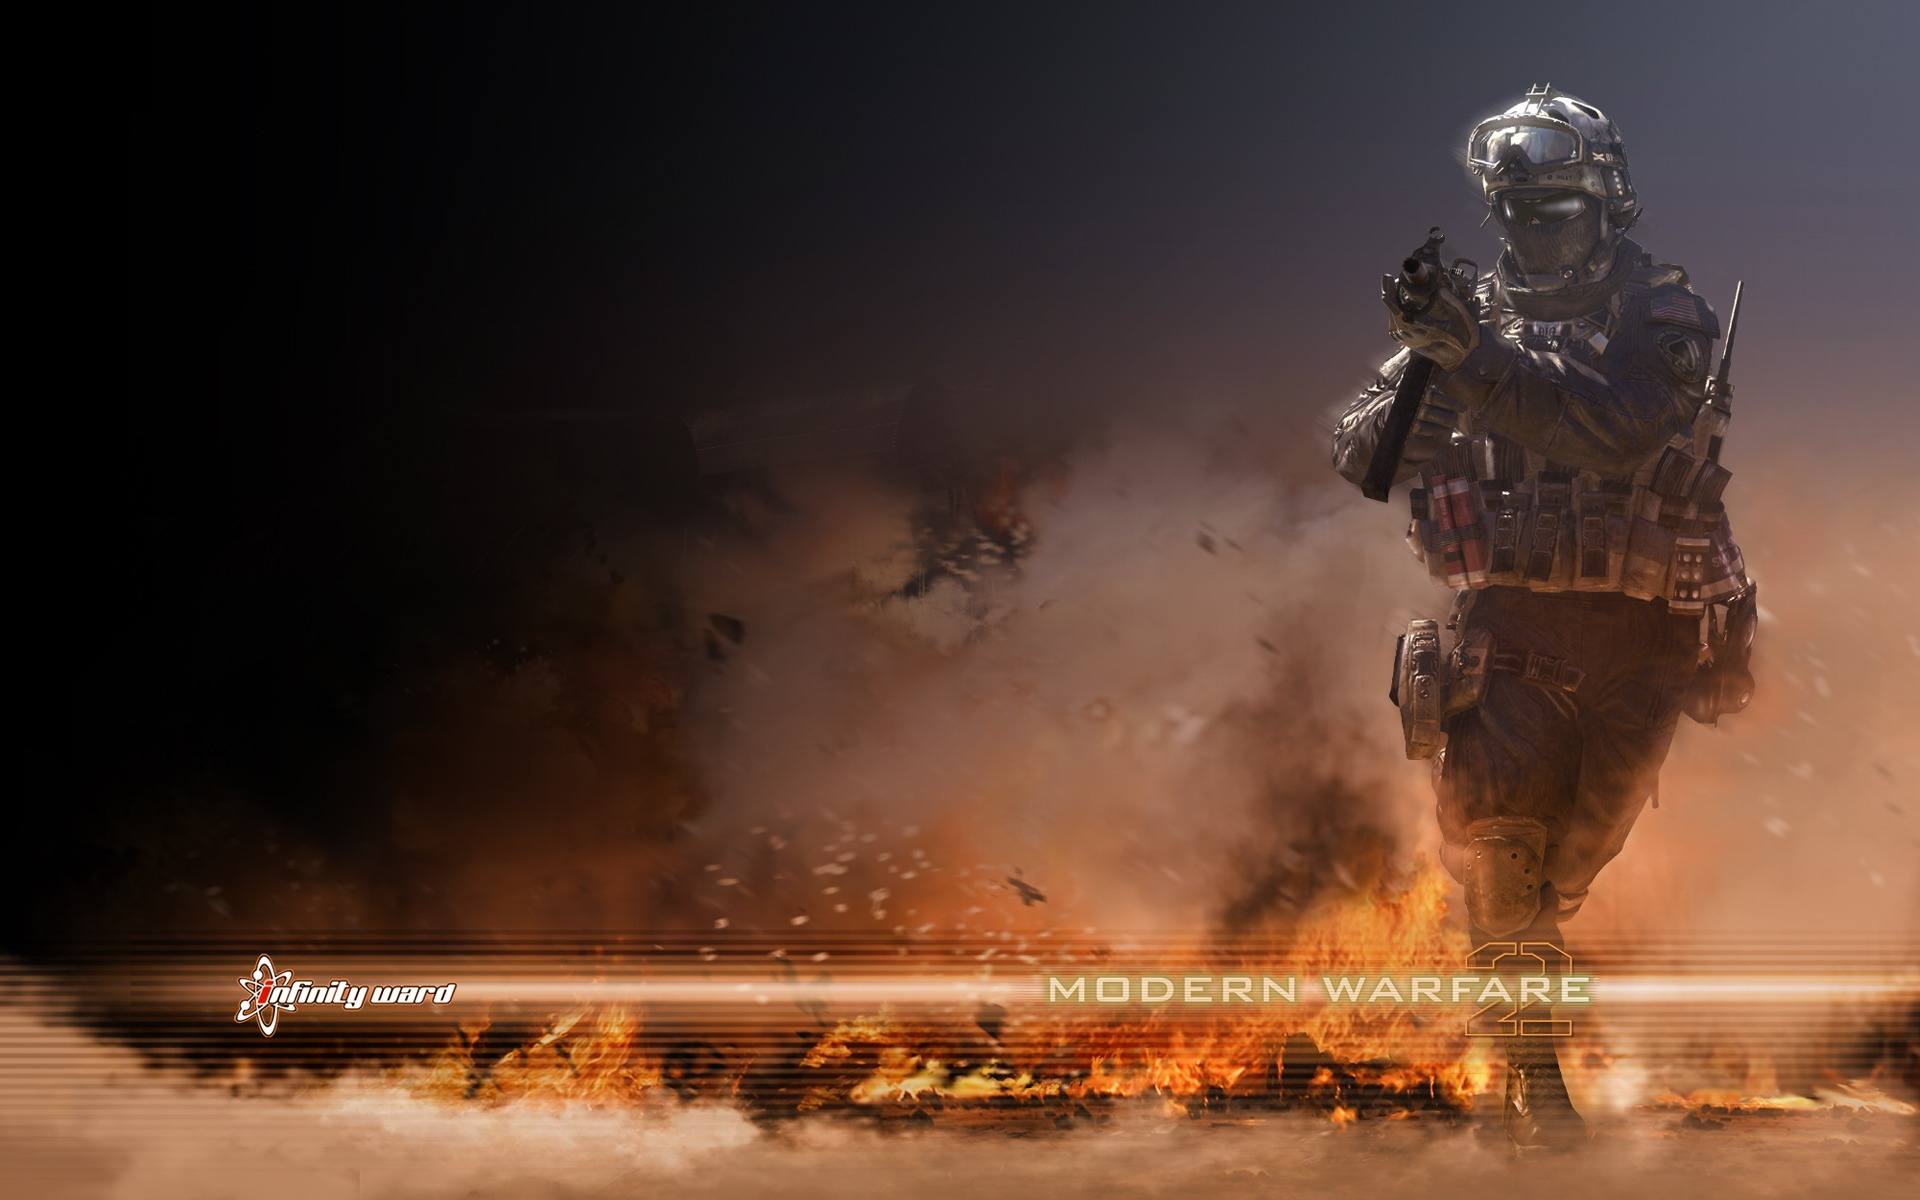 Modern Warfare 2 Wallpaper Call Of Duty Games Wallpapers In Jpg Format For Free Download